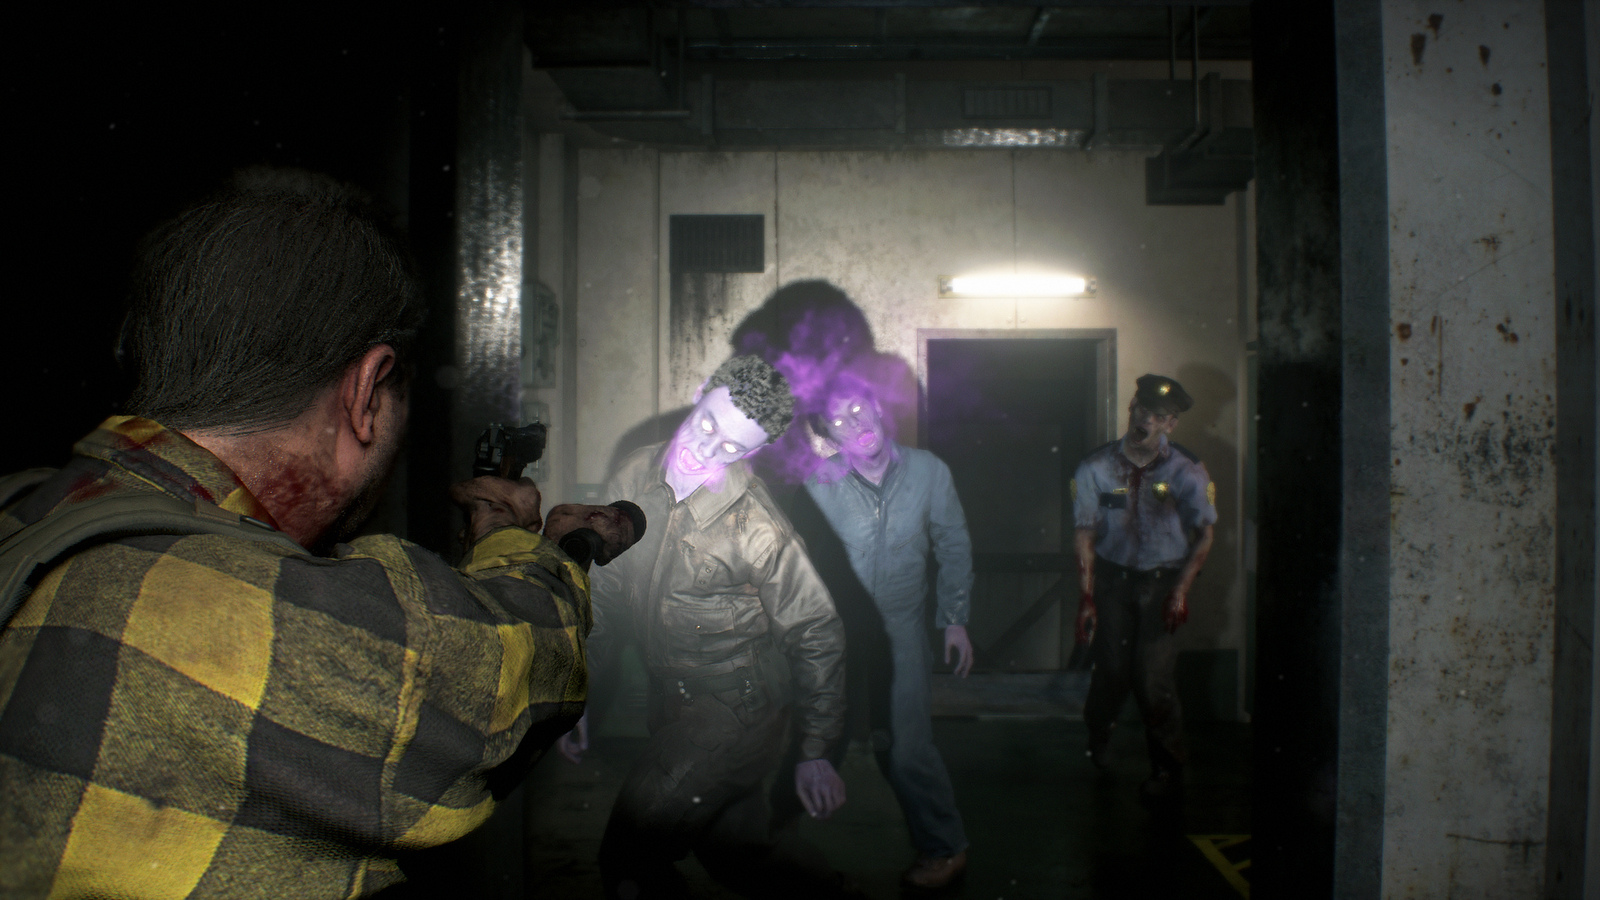 New zombie types and challenges await you in the Resident Evil 2 Ghost Survivors DLC